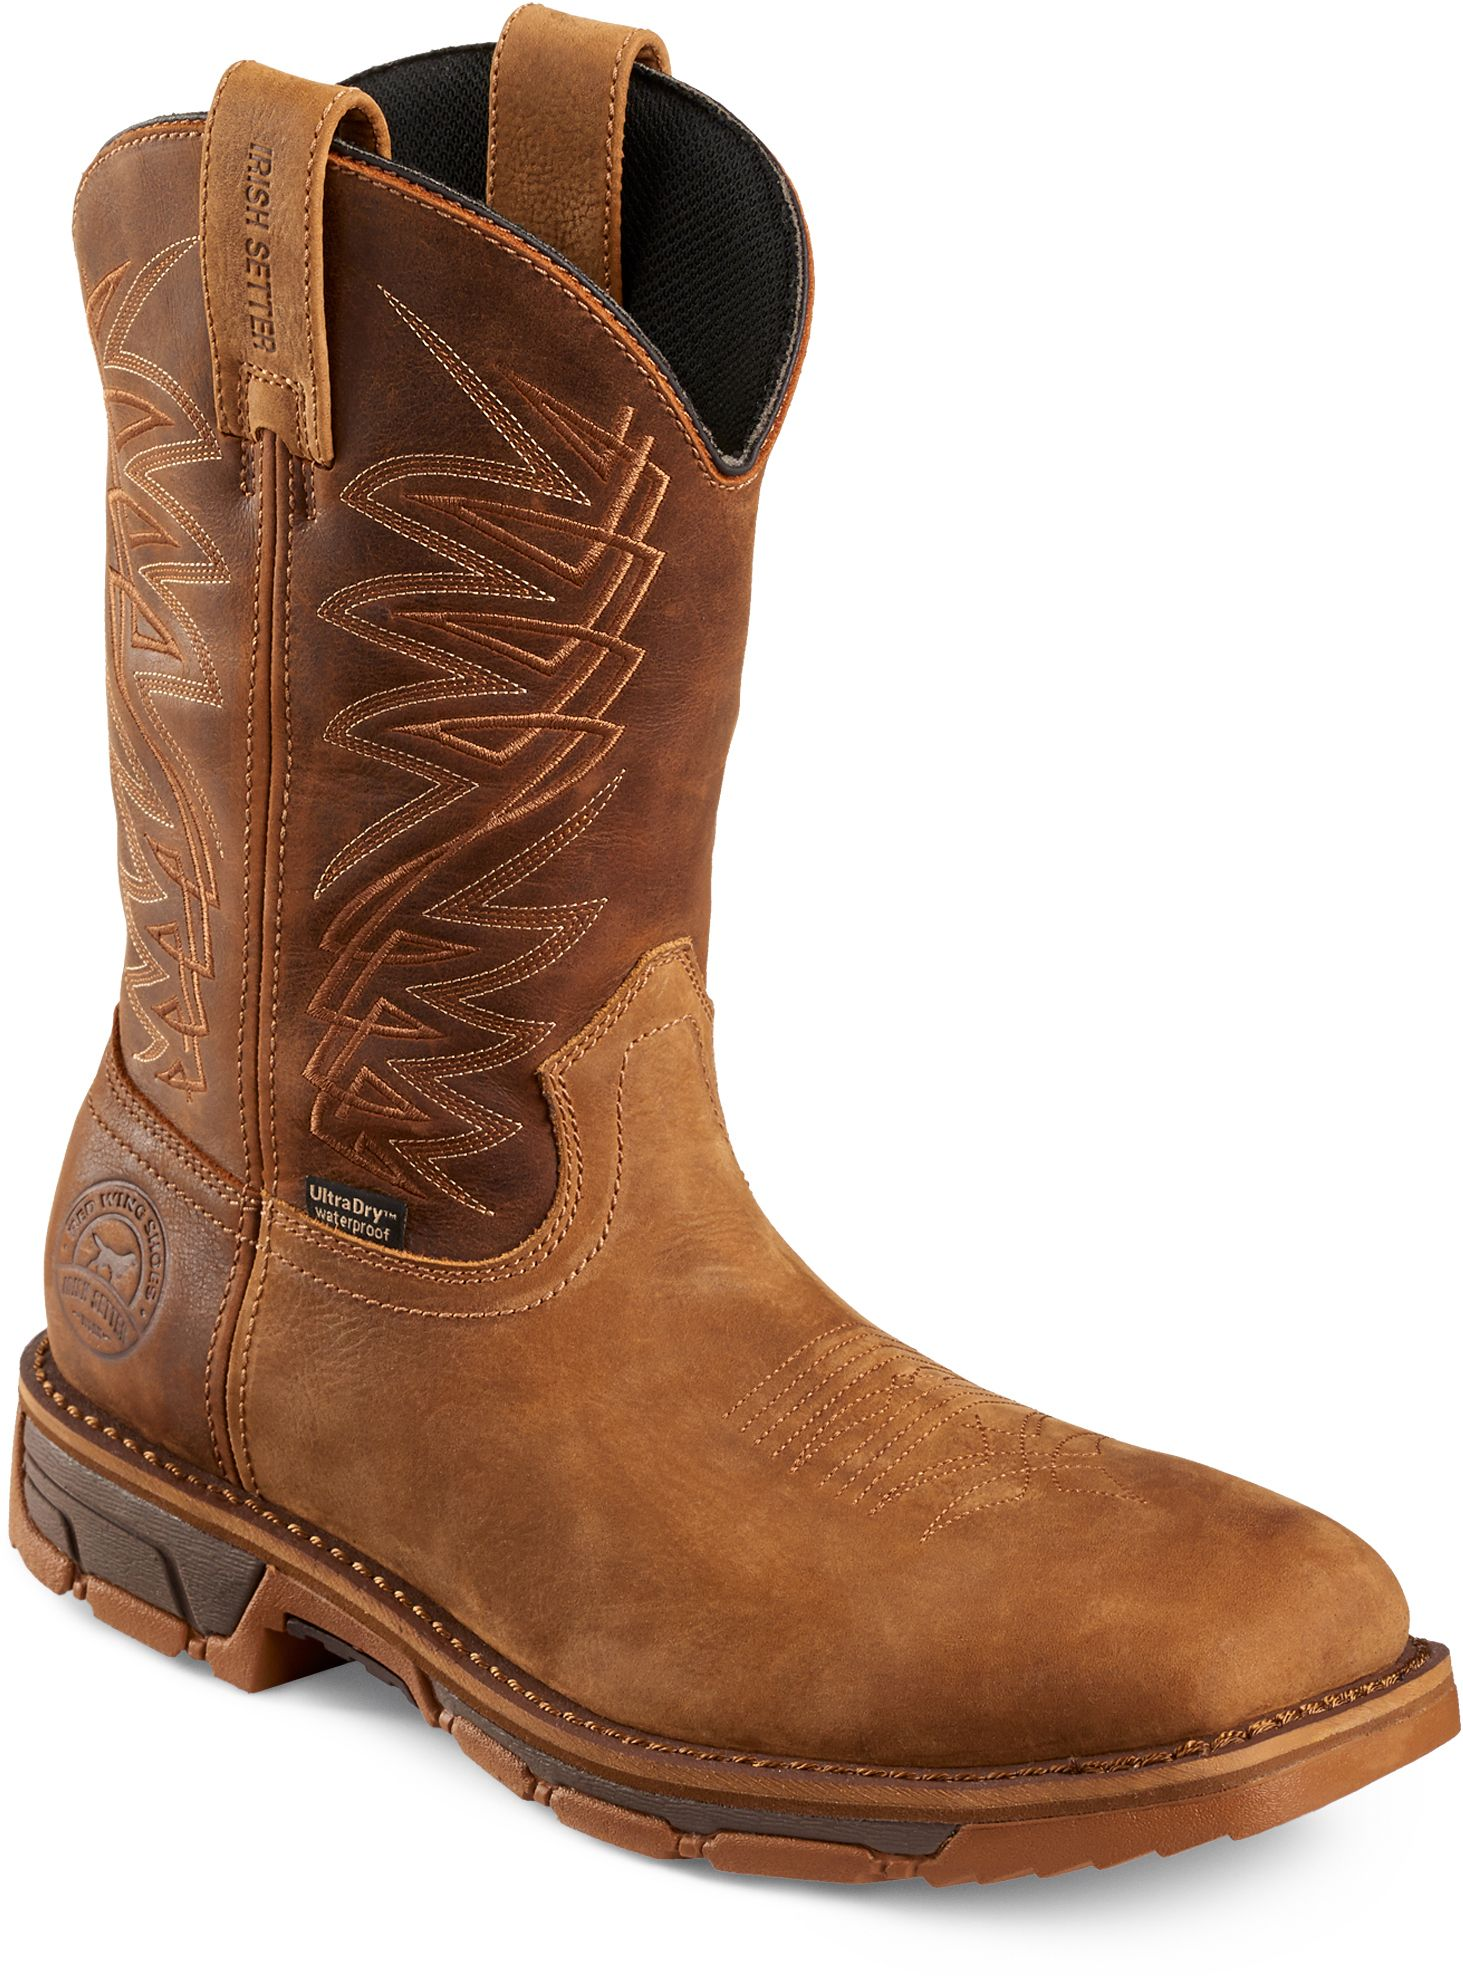 Irish Setter Men's Marshall 11